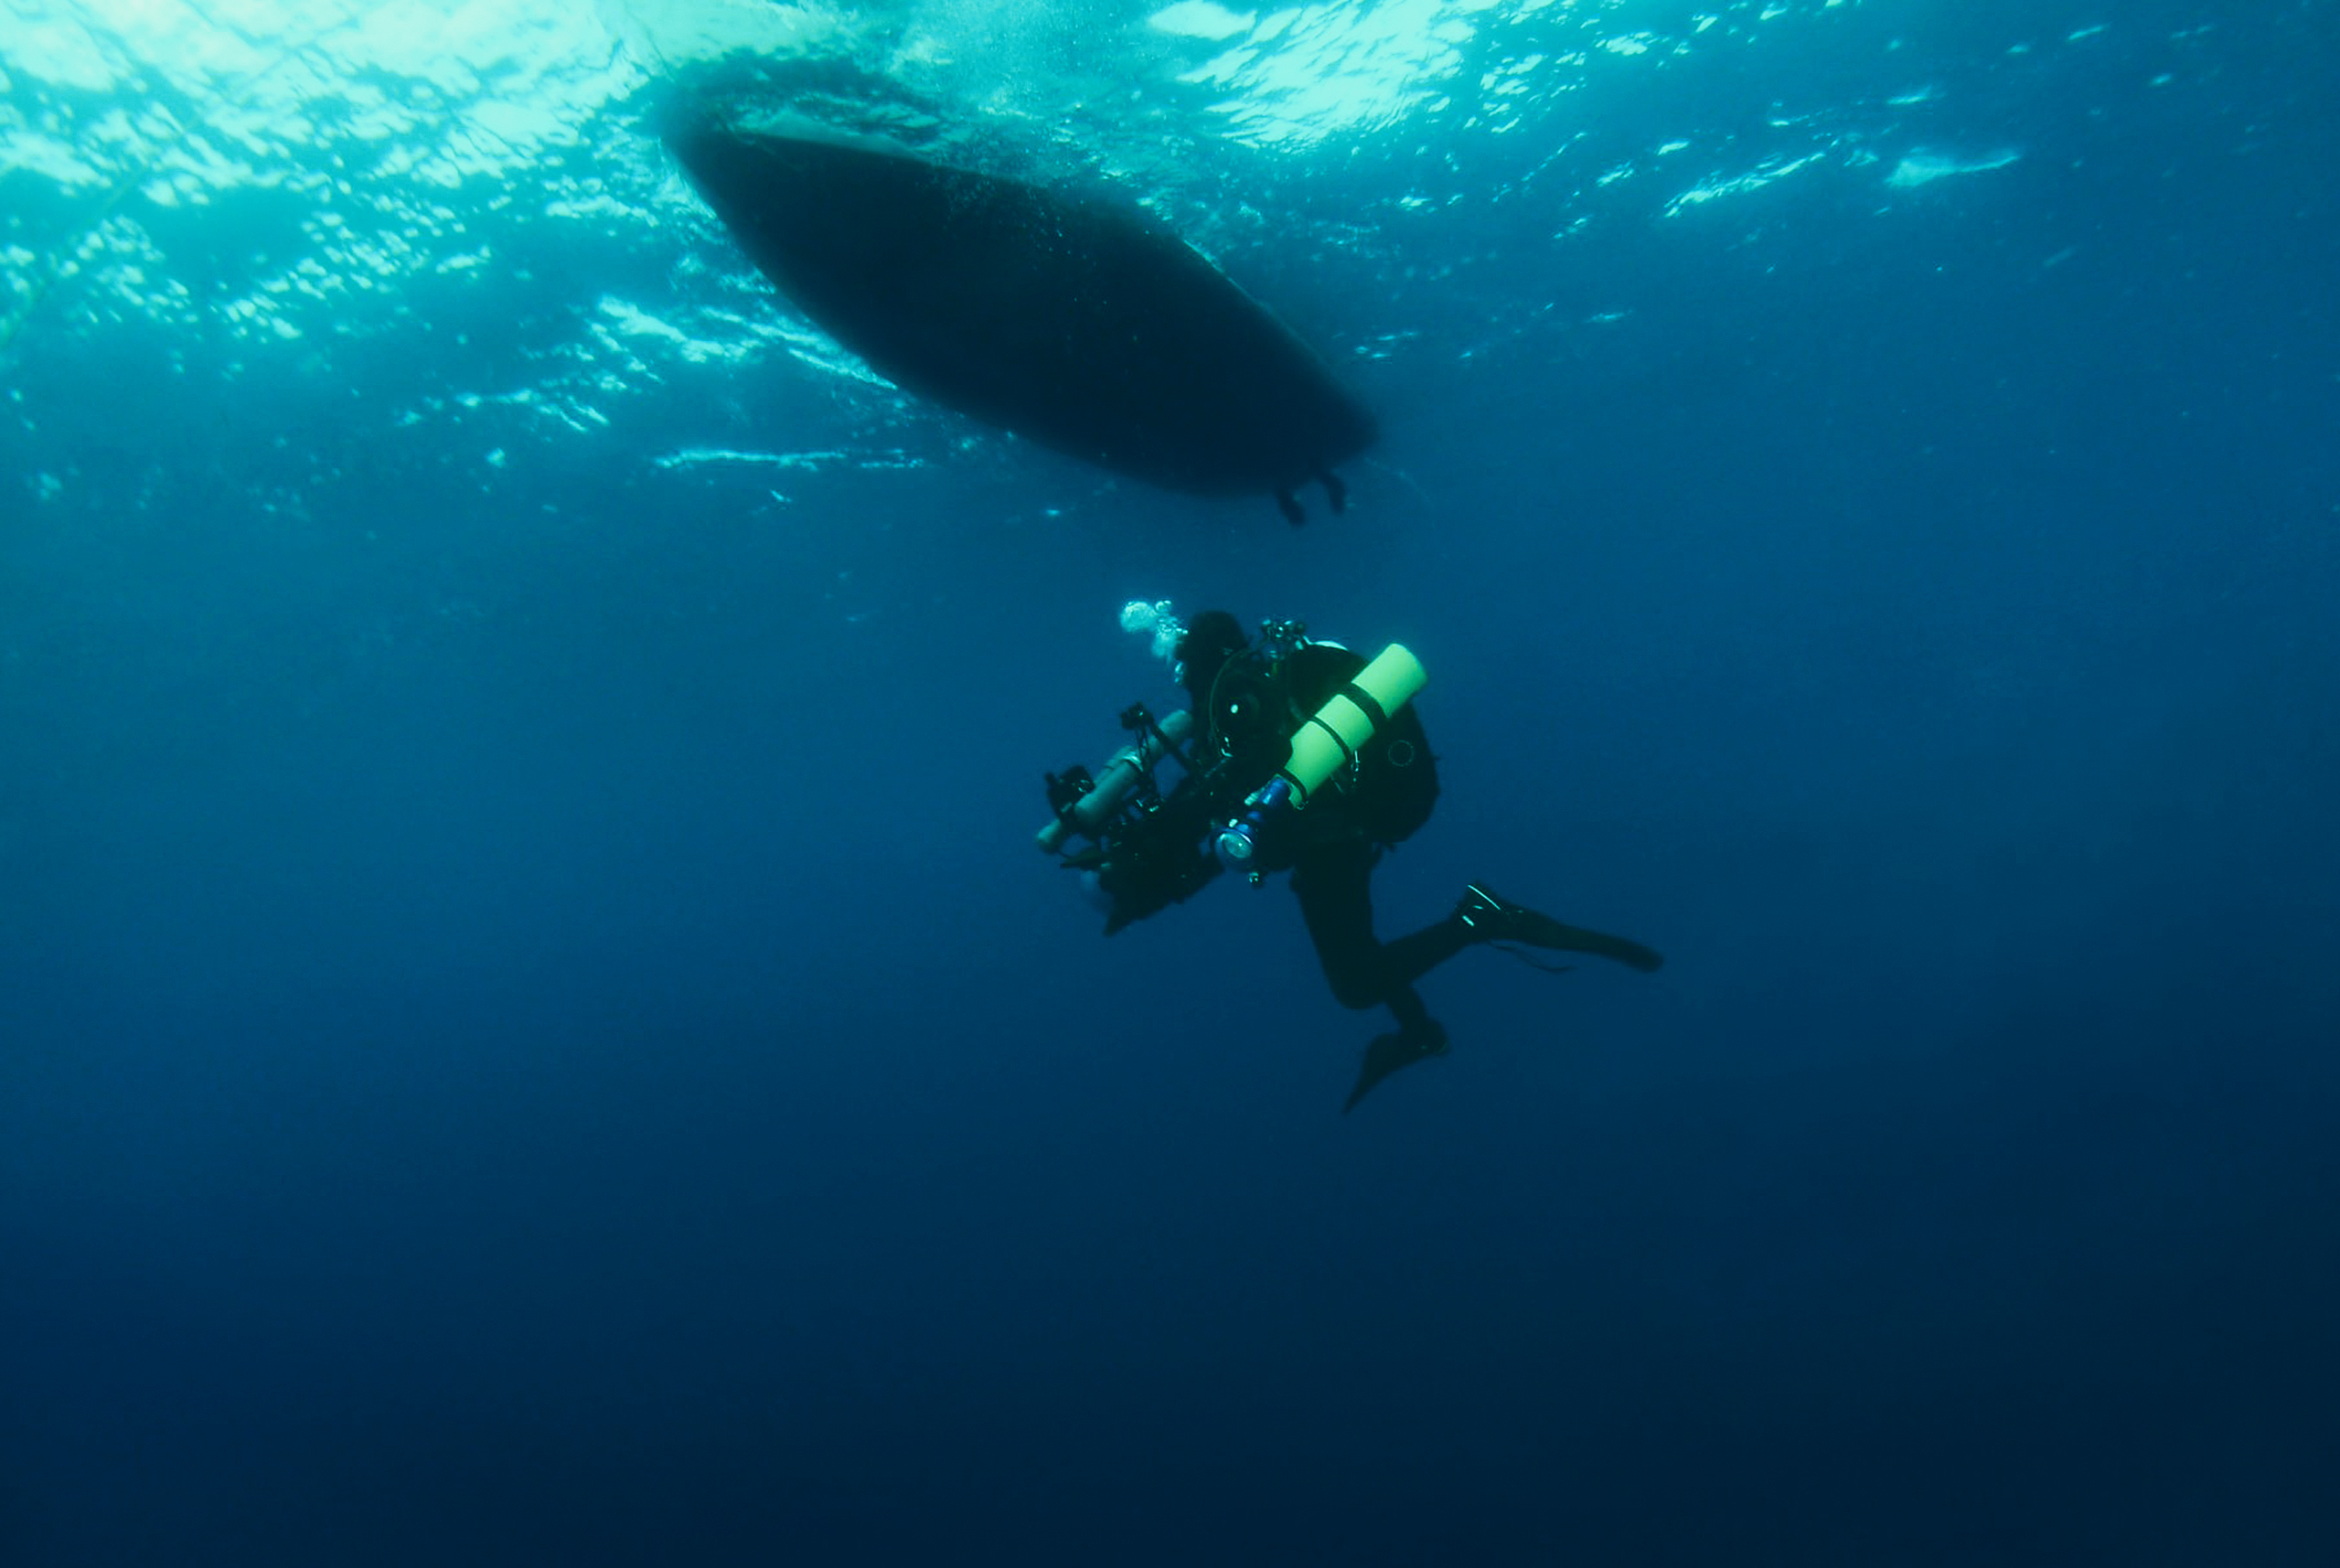 flavio_oliva_underwater_cinematography_11